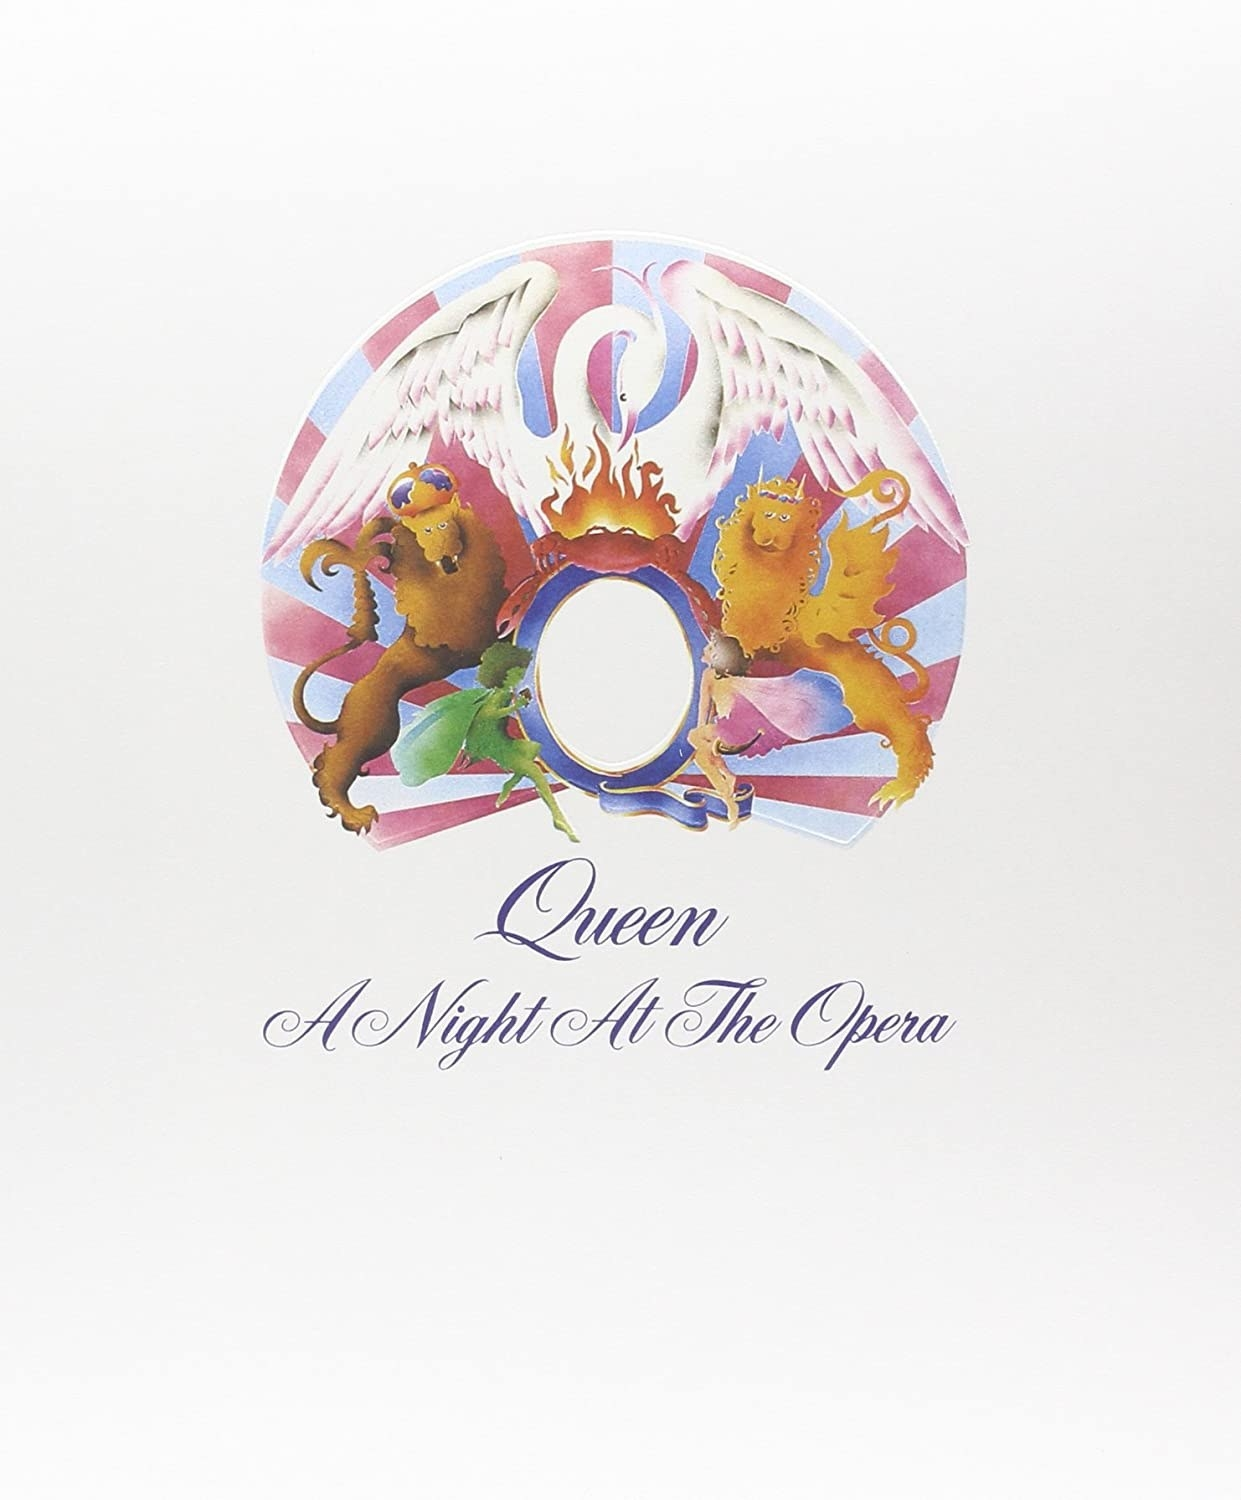 album cover of A Night at the Opera showing the Queen logo